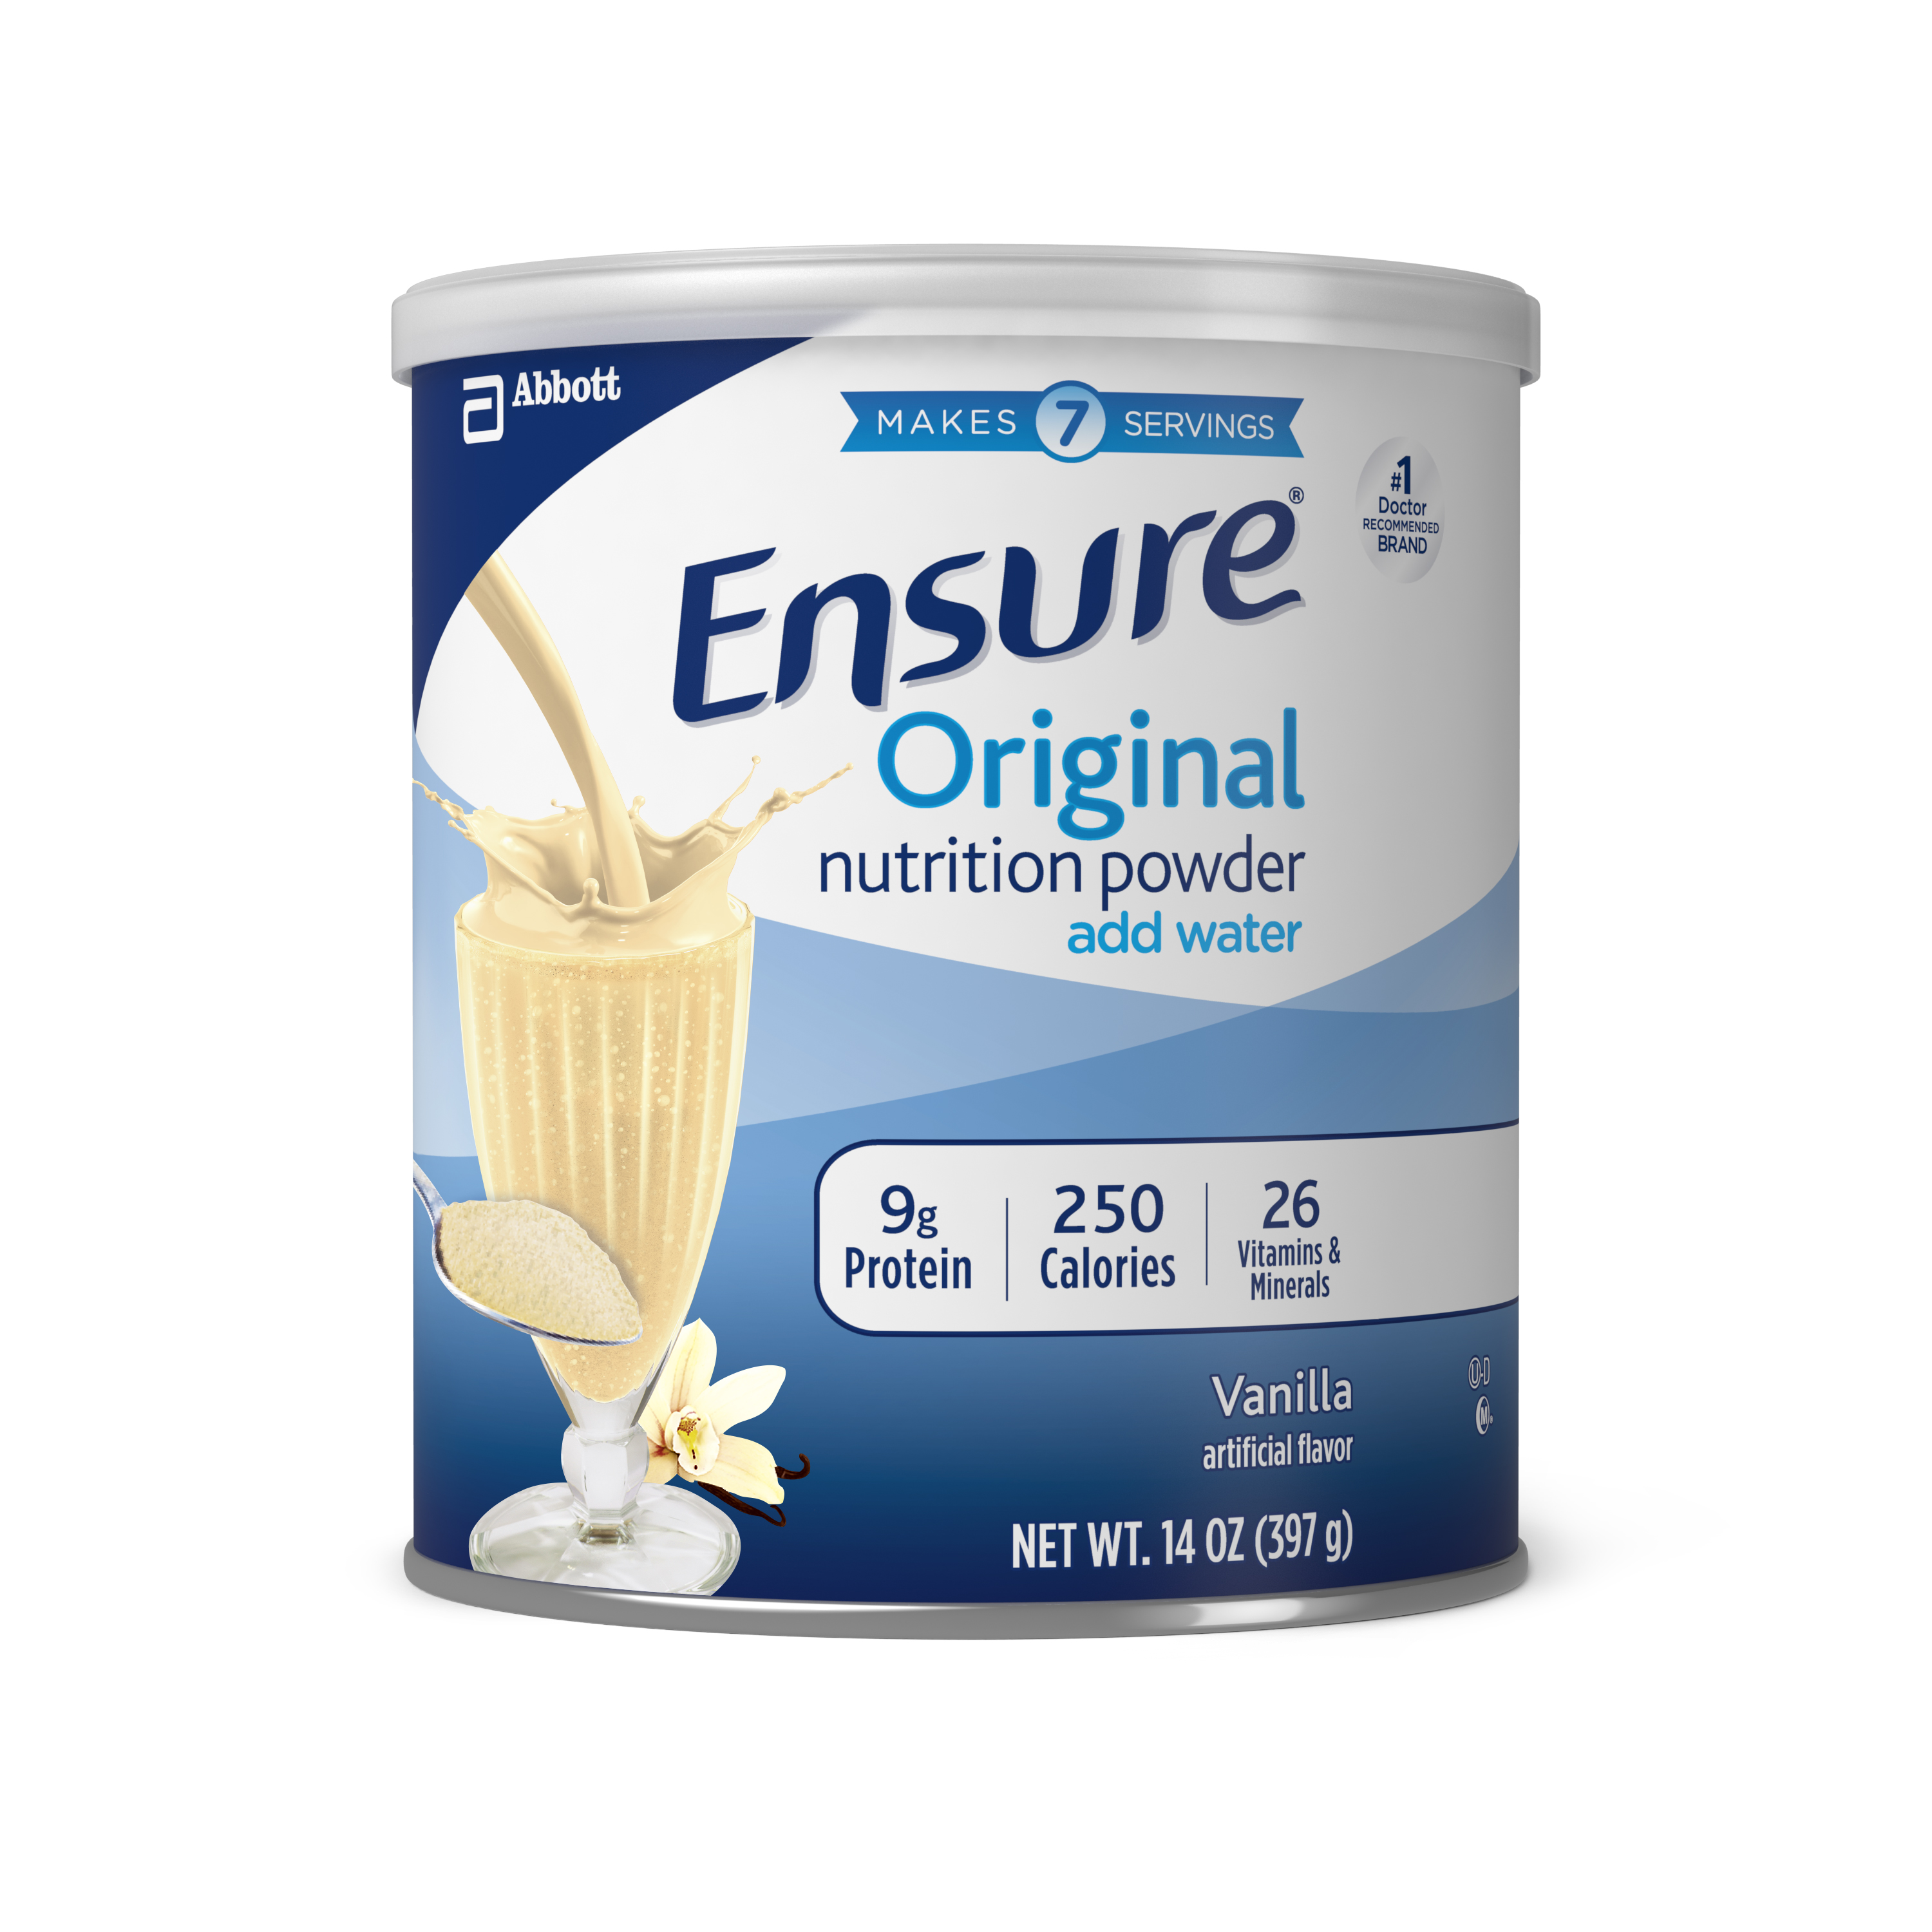 Ensure Original Nutrition Shake Powder with 9 grams of protein, Meal Replacement Shakes, Vanilla, 14 oz